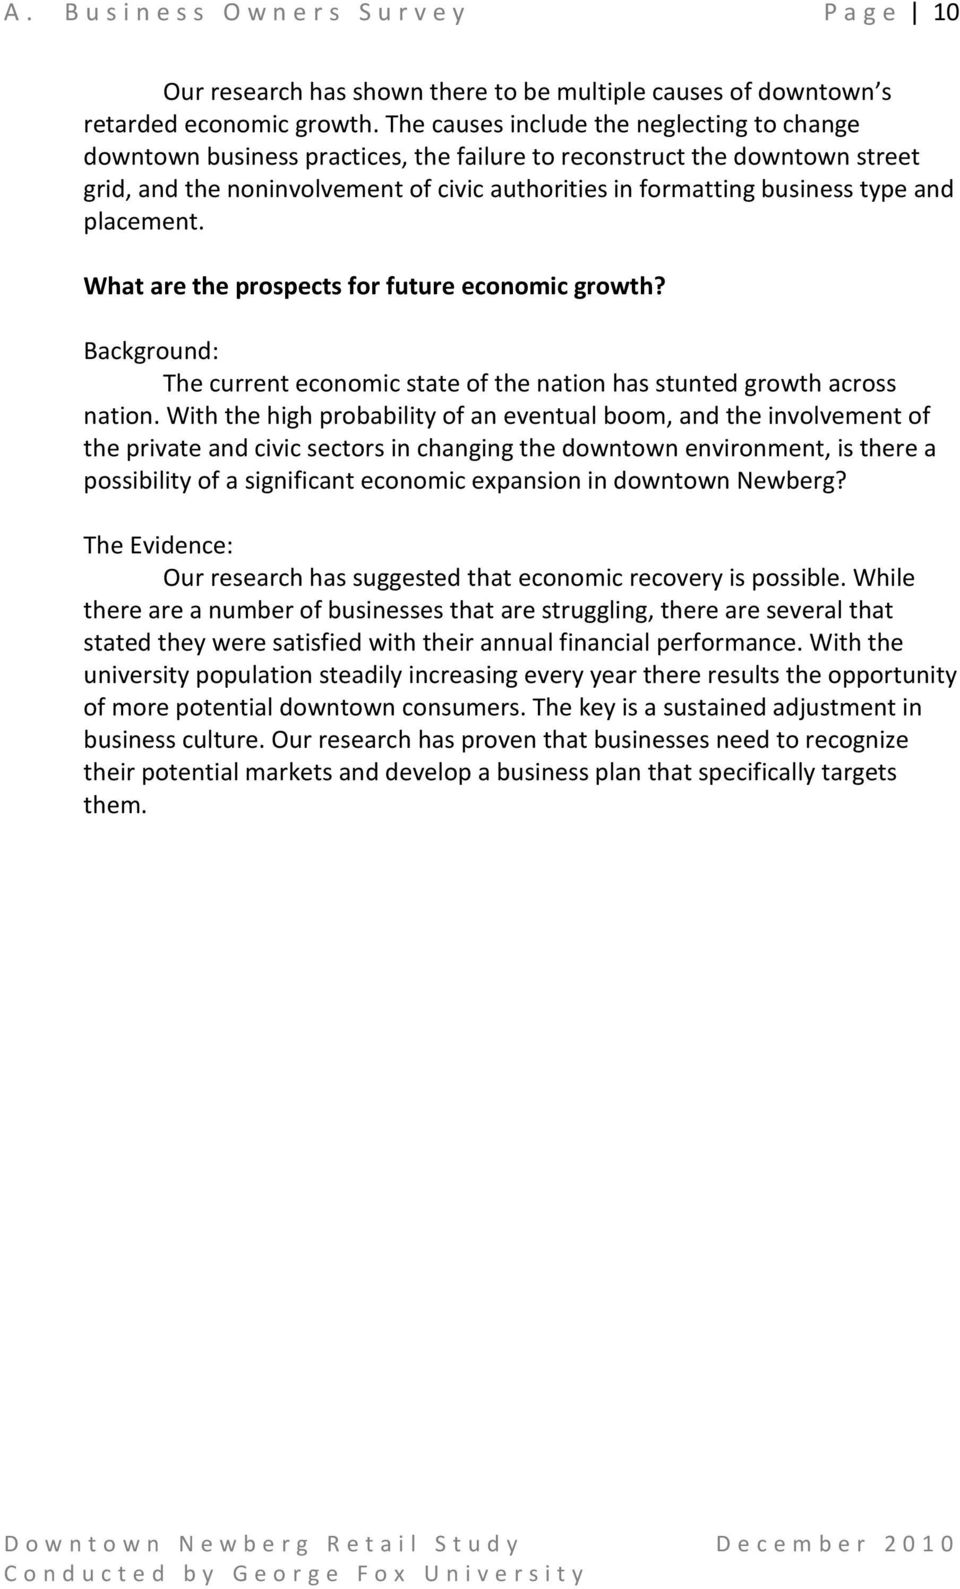 and placement. What are the prospects for future economic growth? Background: The current economic state of the nation has stunted growth across nation.